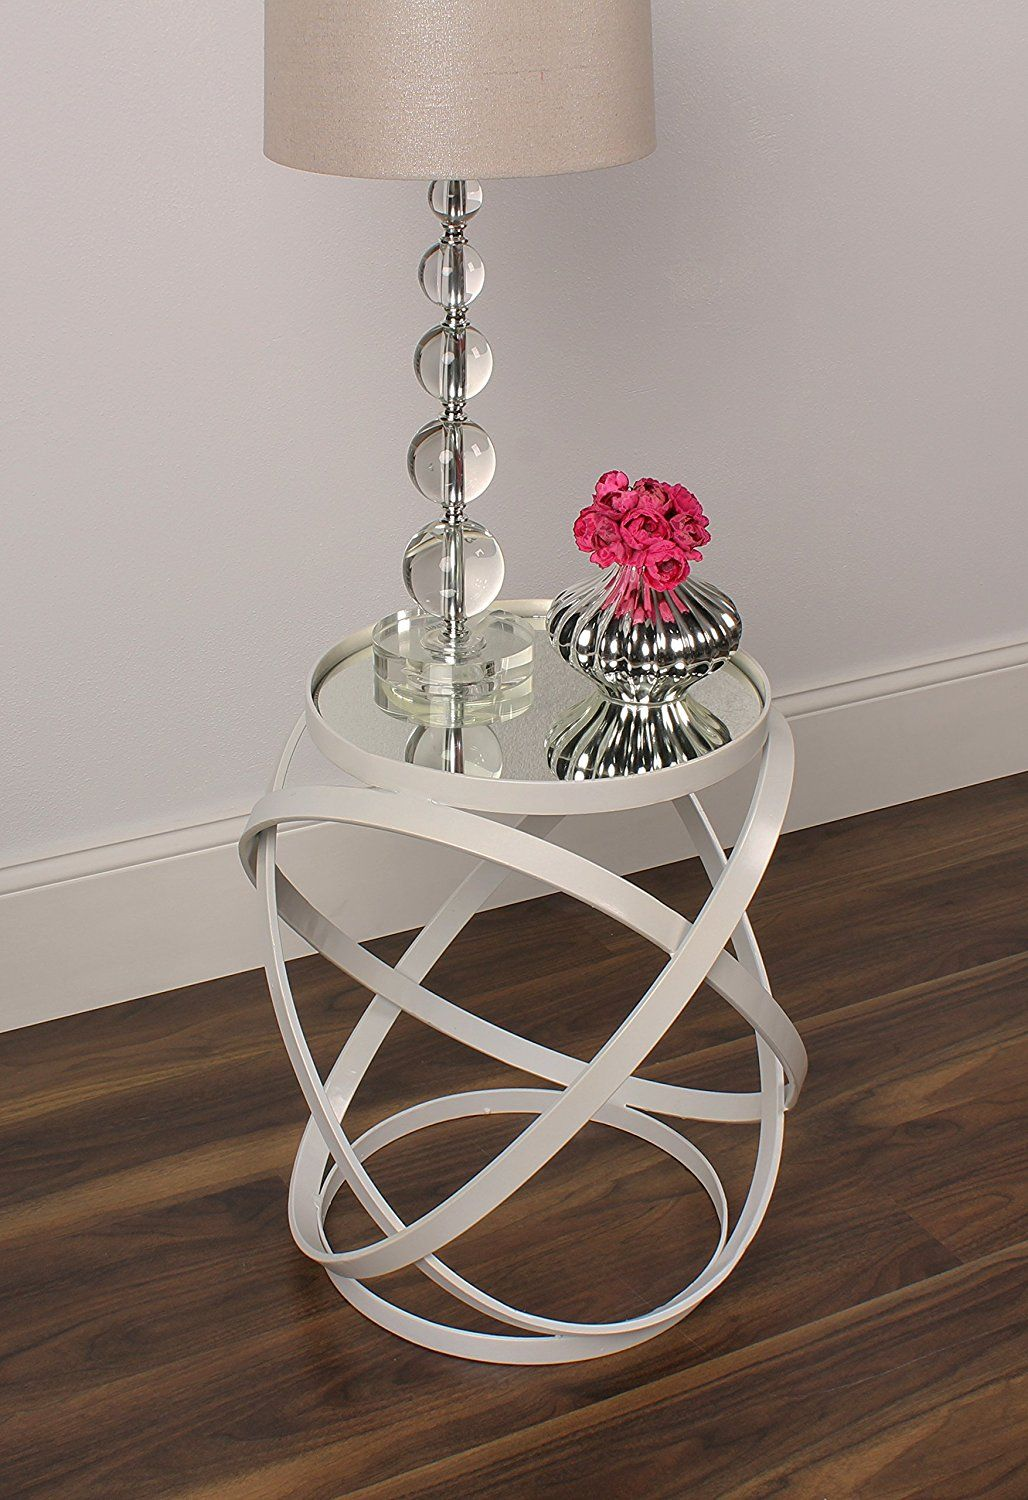 round mirrored end table | Mirrored end table, Diy end ...